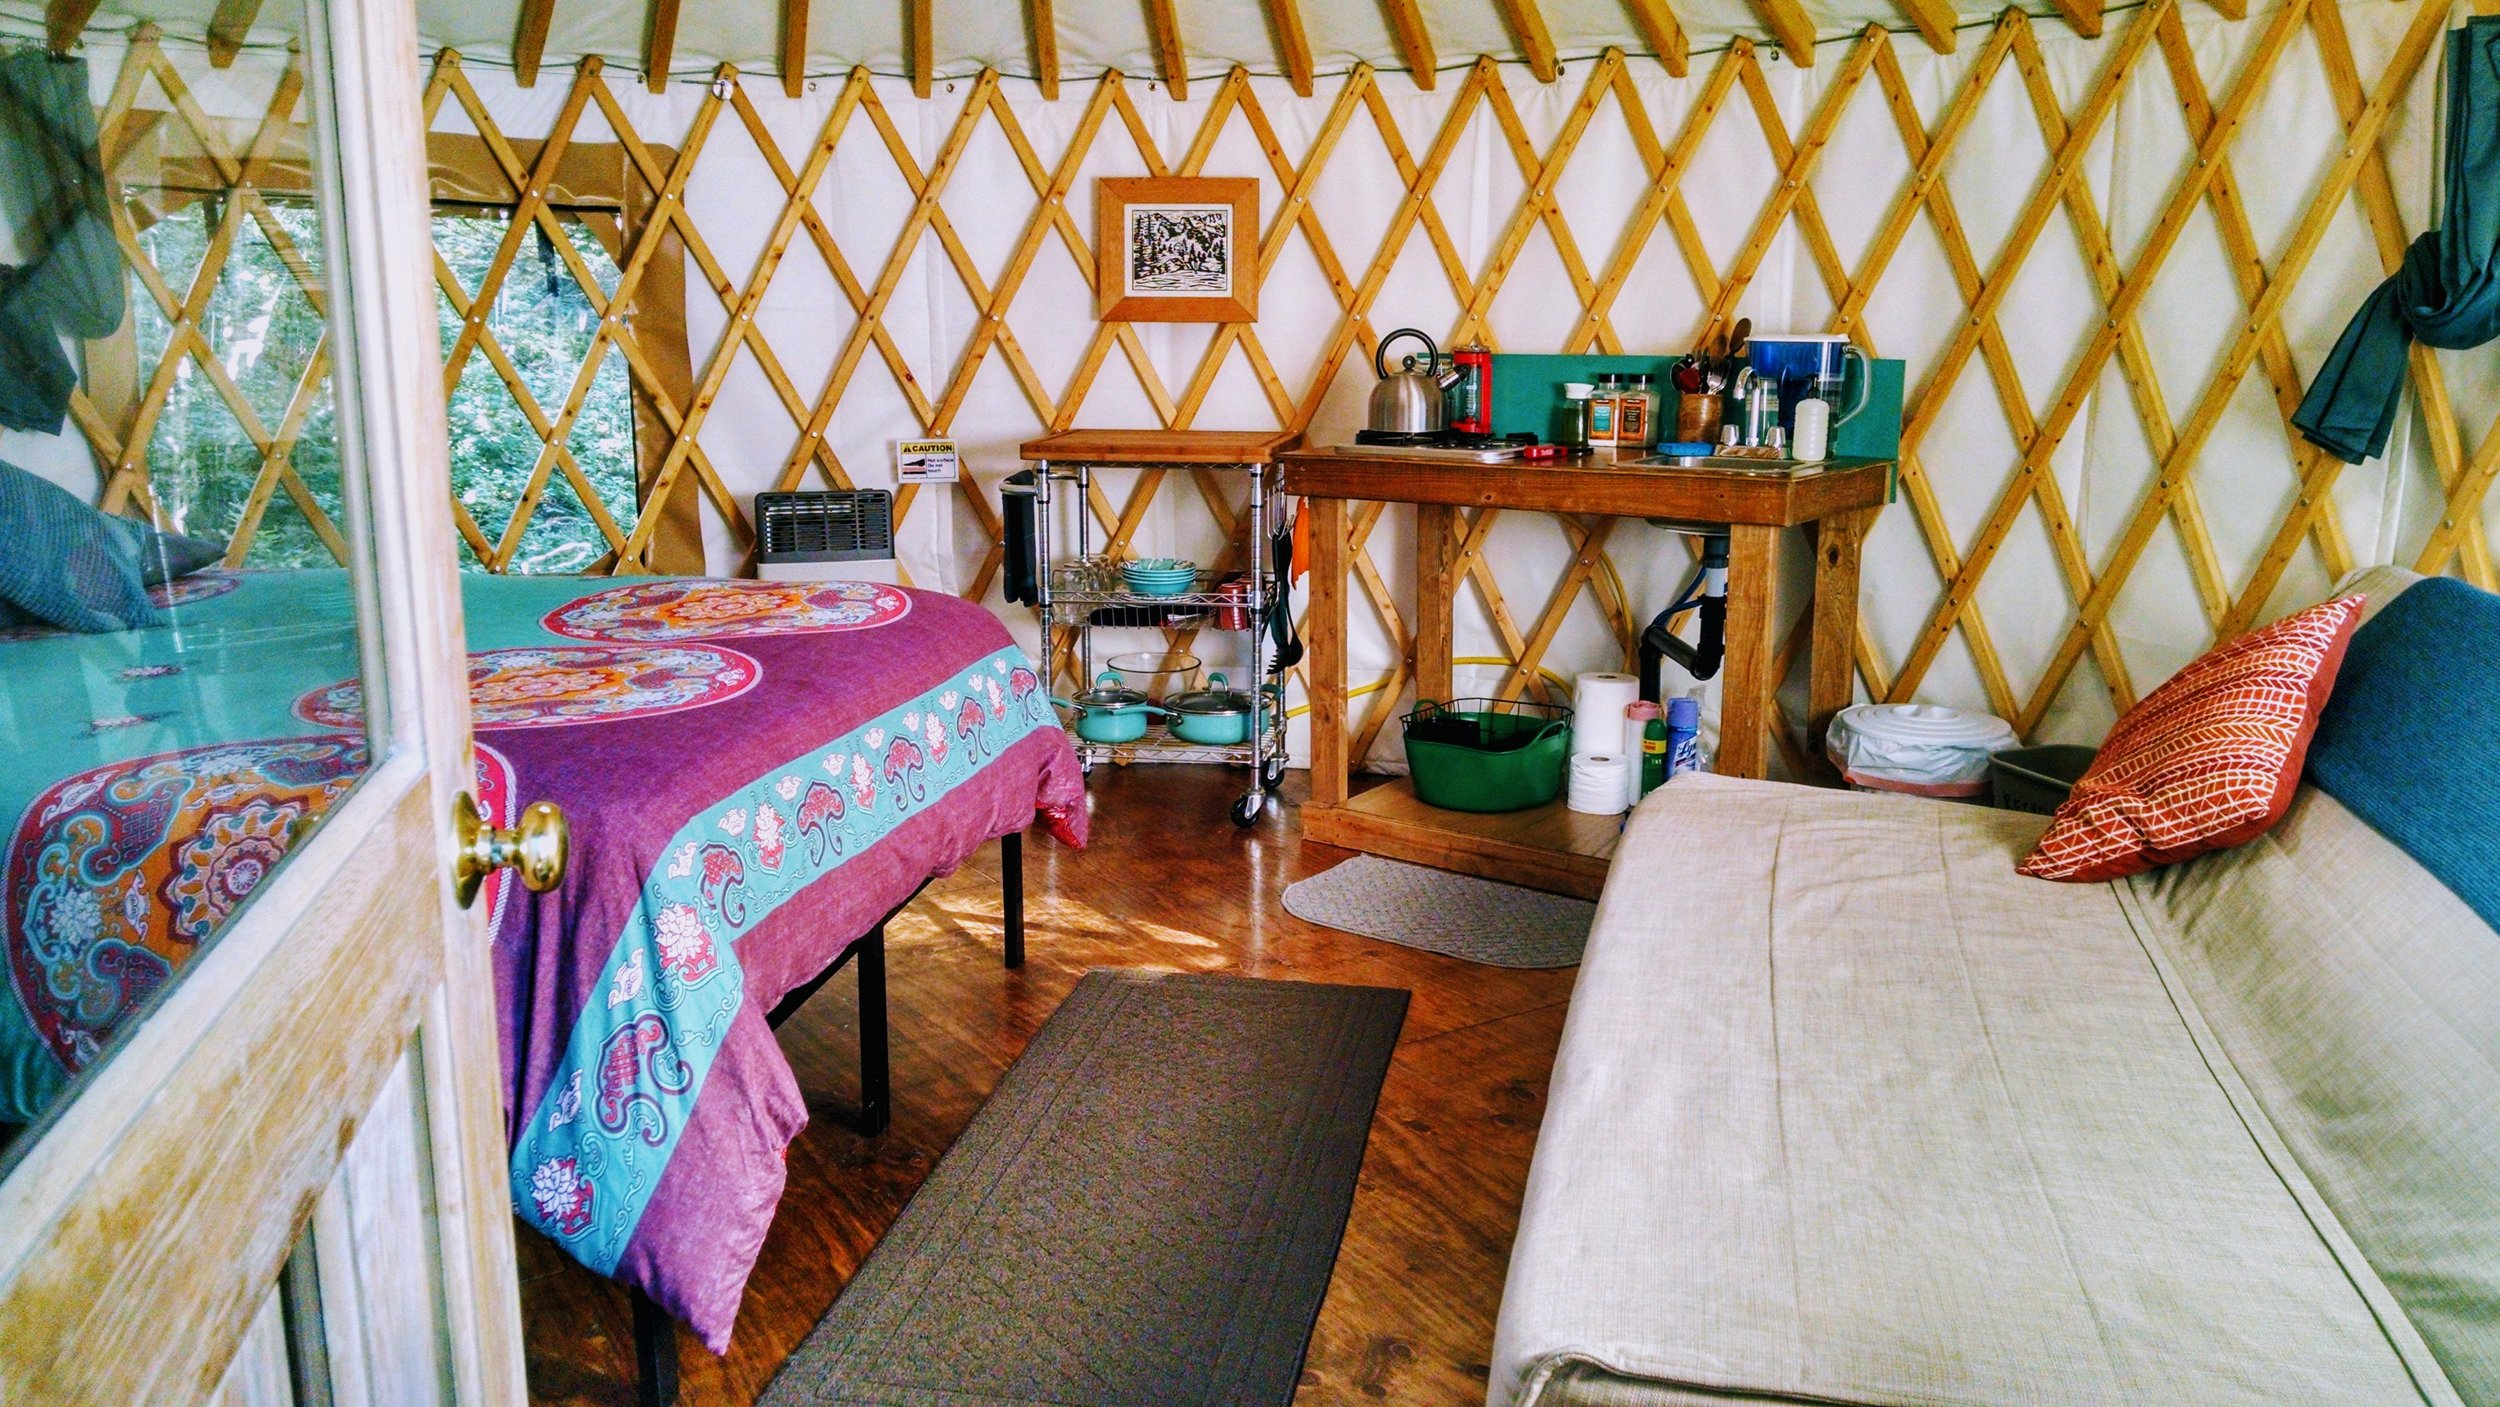 View of the yurt interior: queen memory foam mattress, full size sofa bed, kitchen, rolling cart with cutting board and dishes, heater.